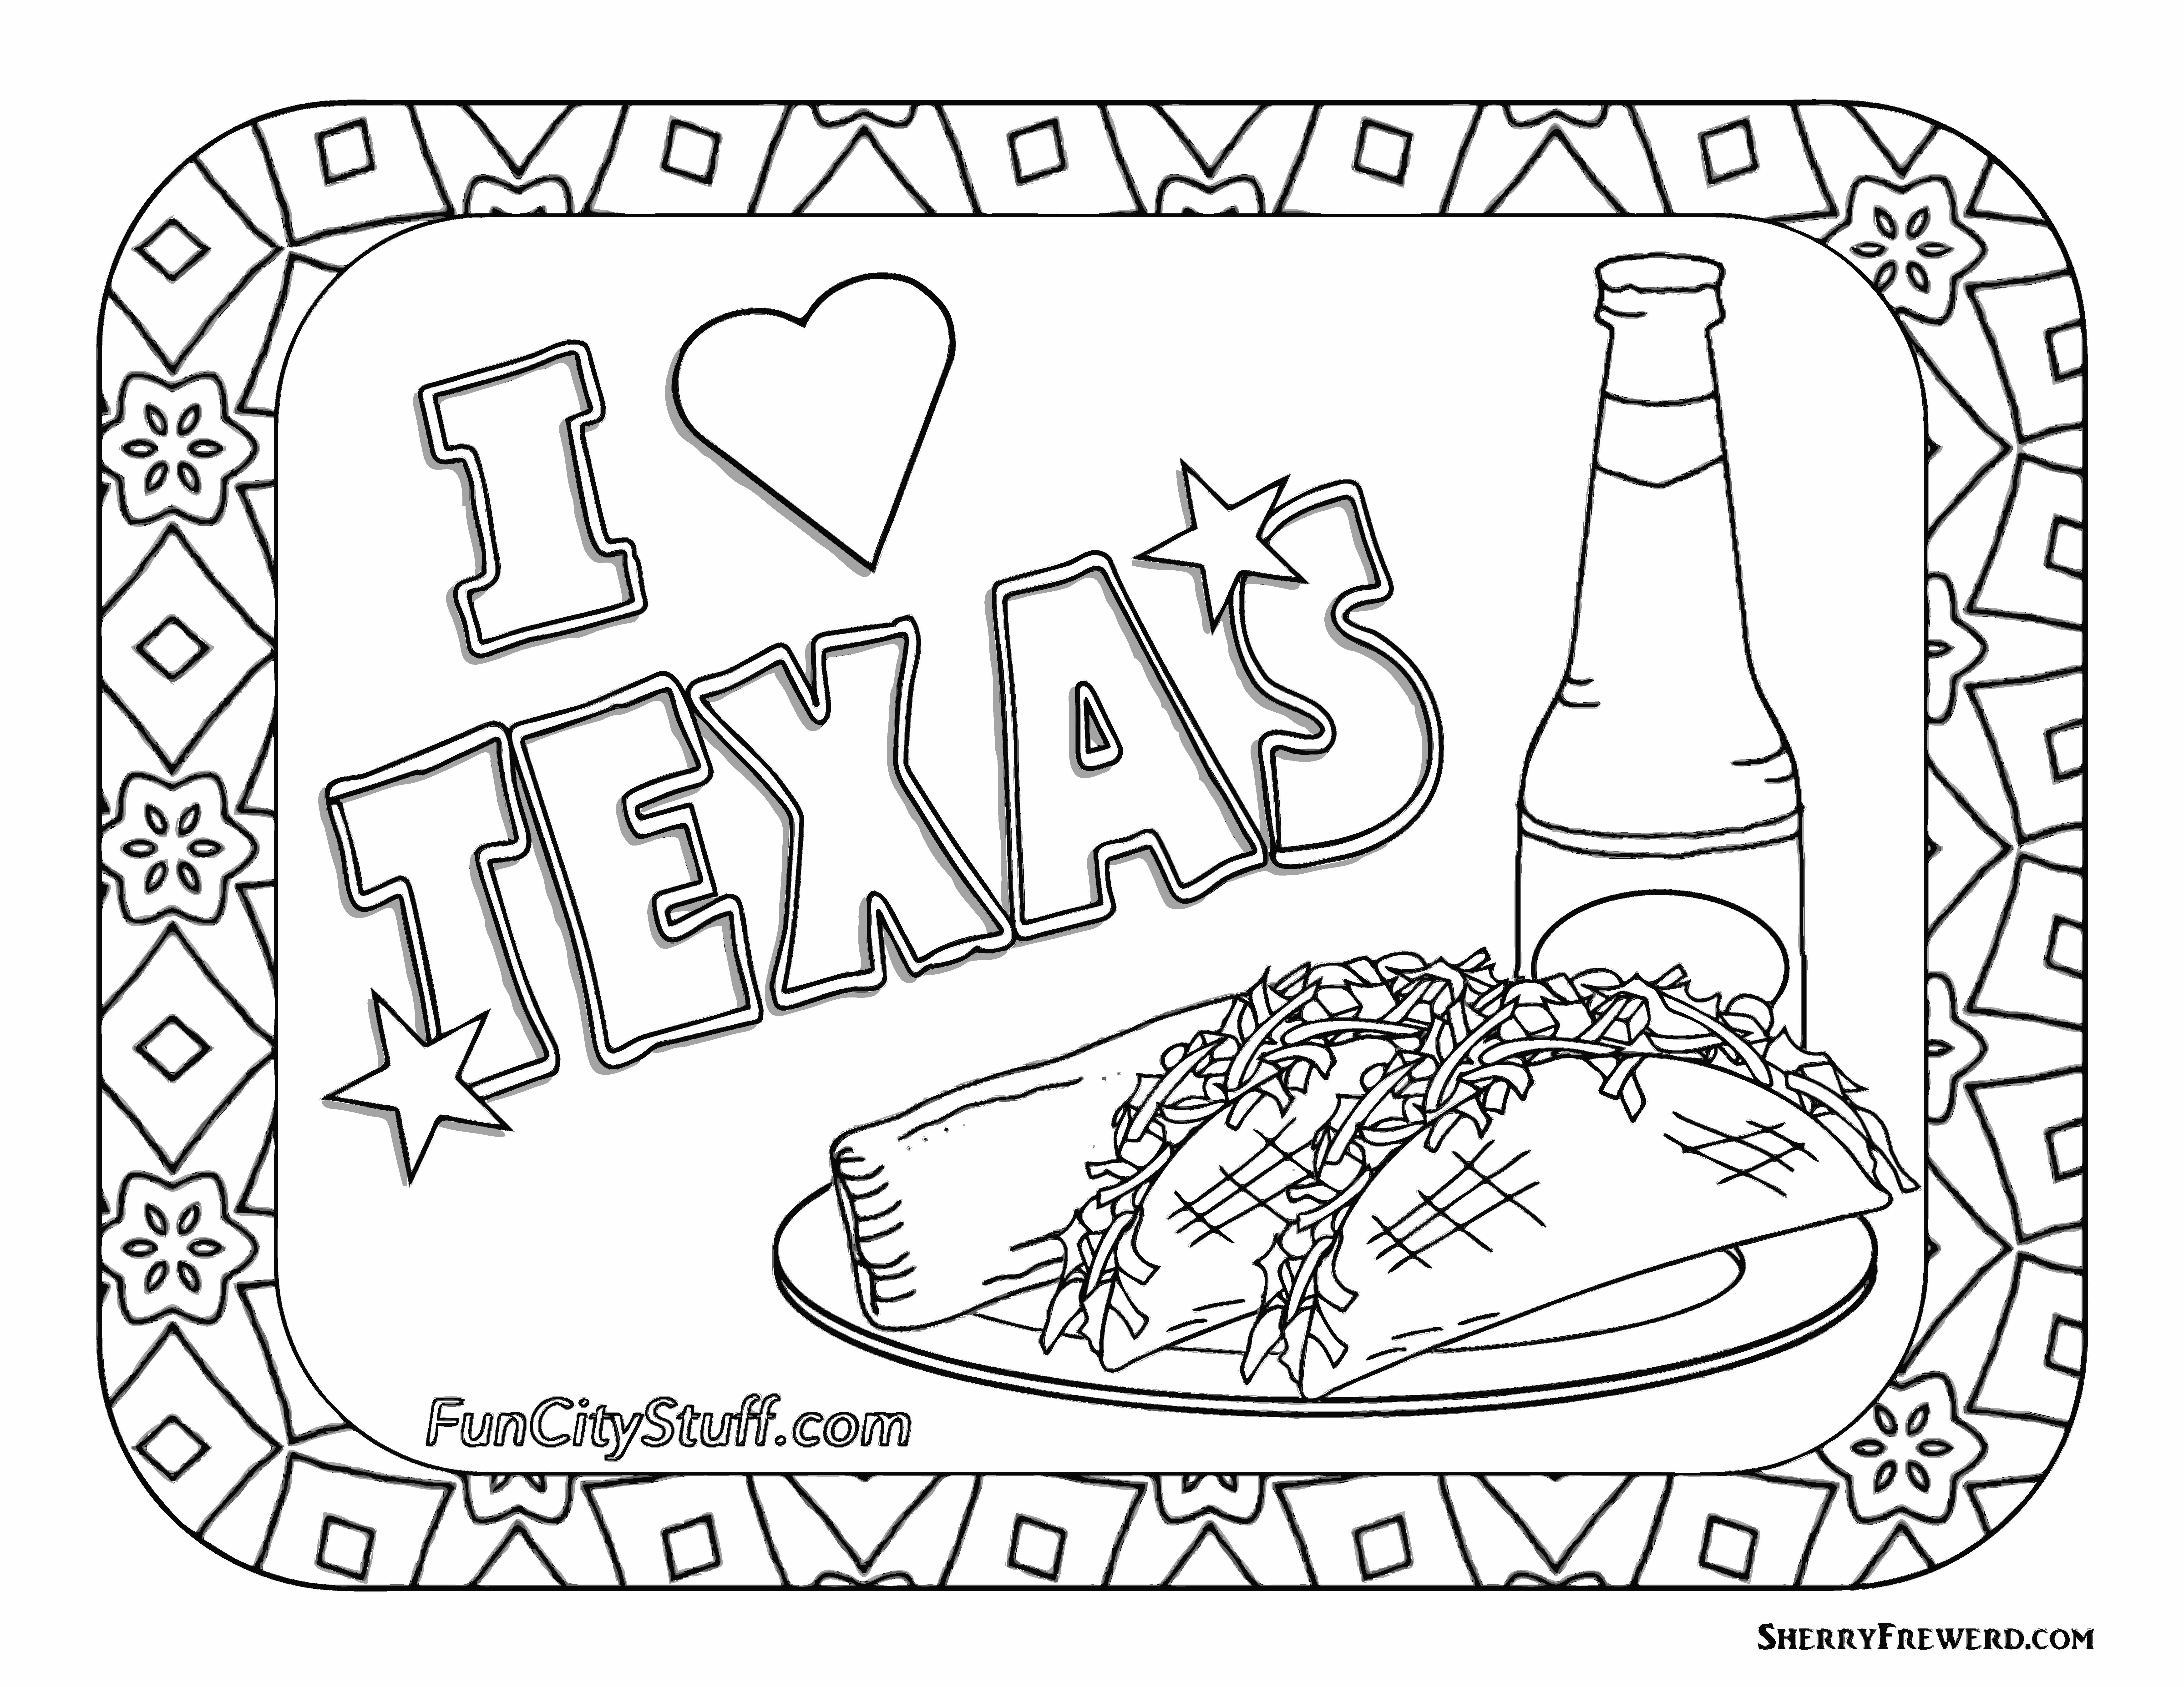 Texas Flag Coloring Page Texas Texas Flags Flag Coloring